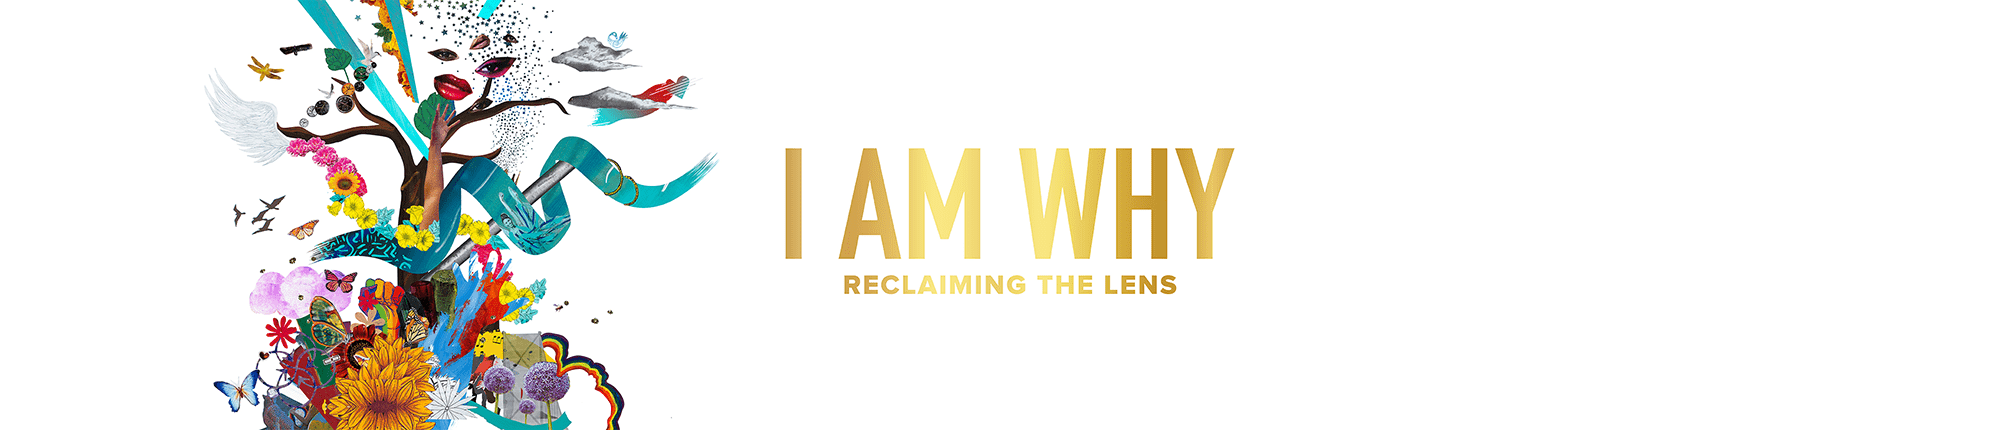 I Am Why: Reclaiming The Lens